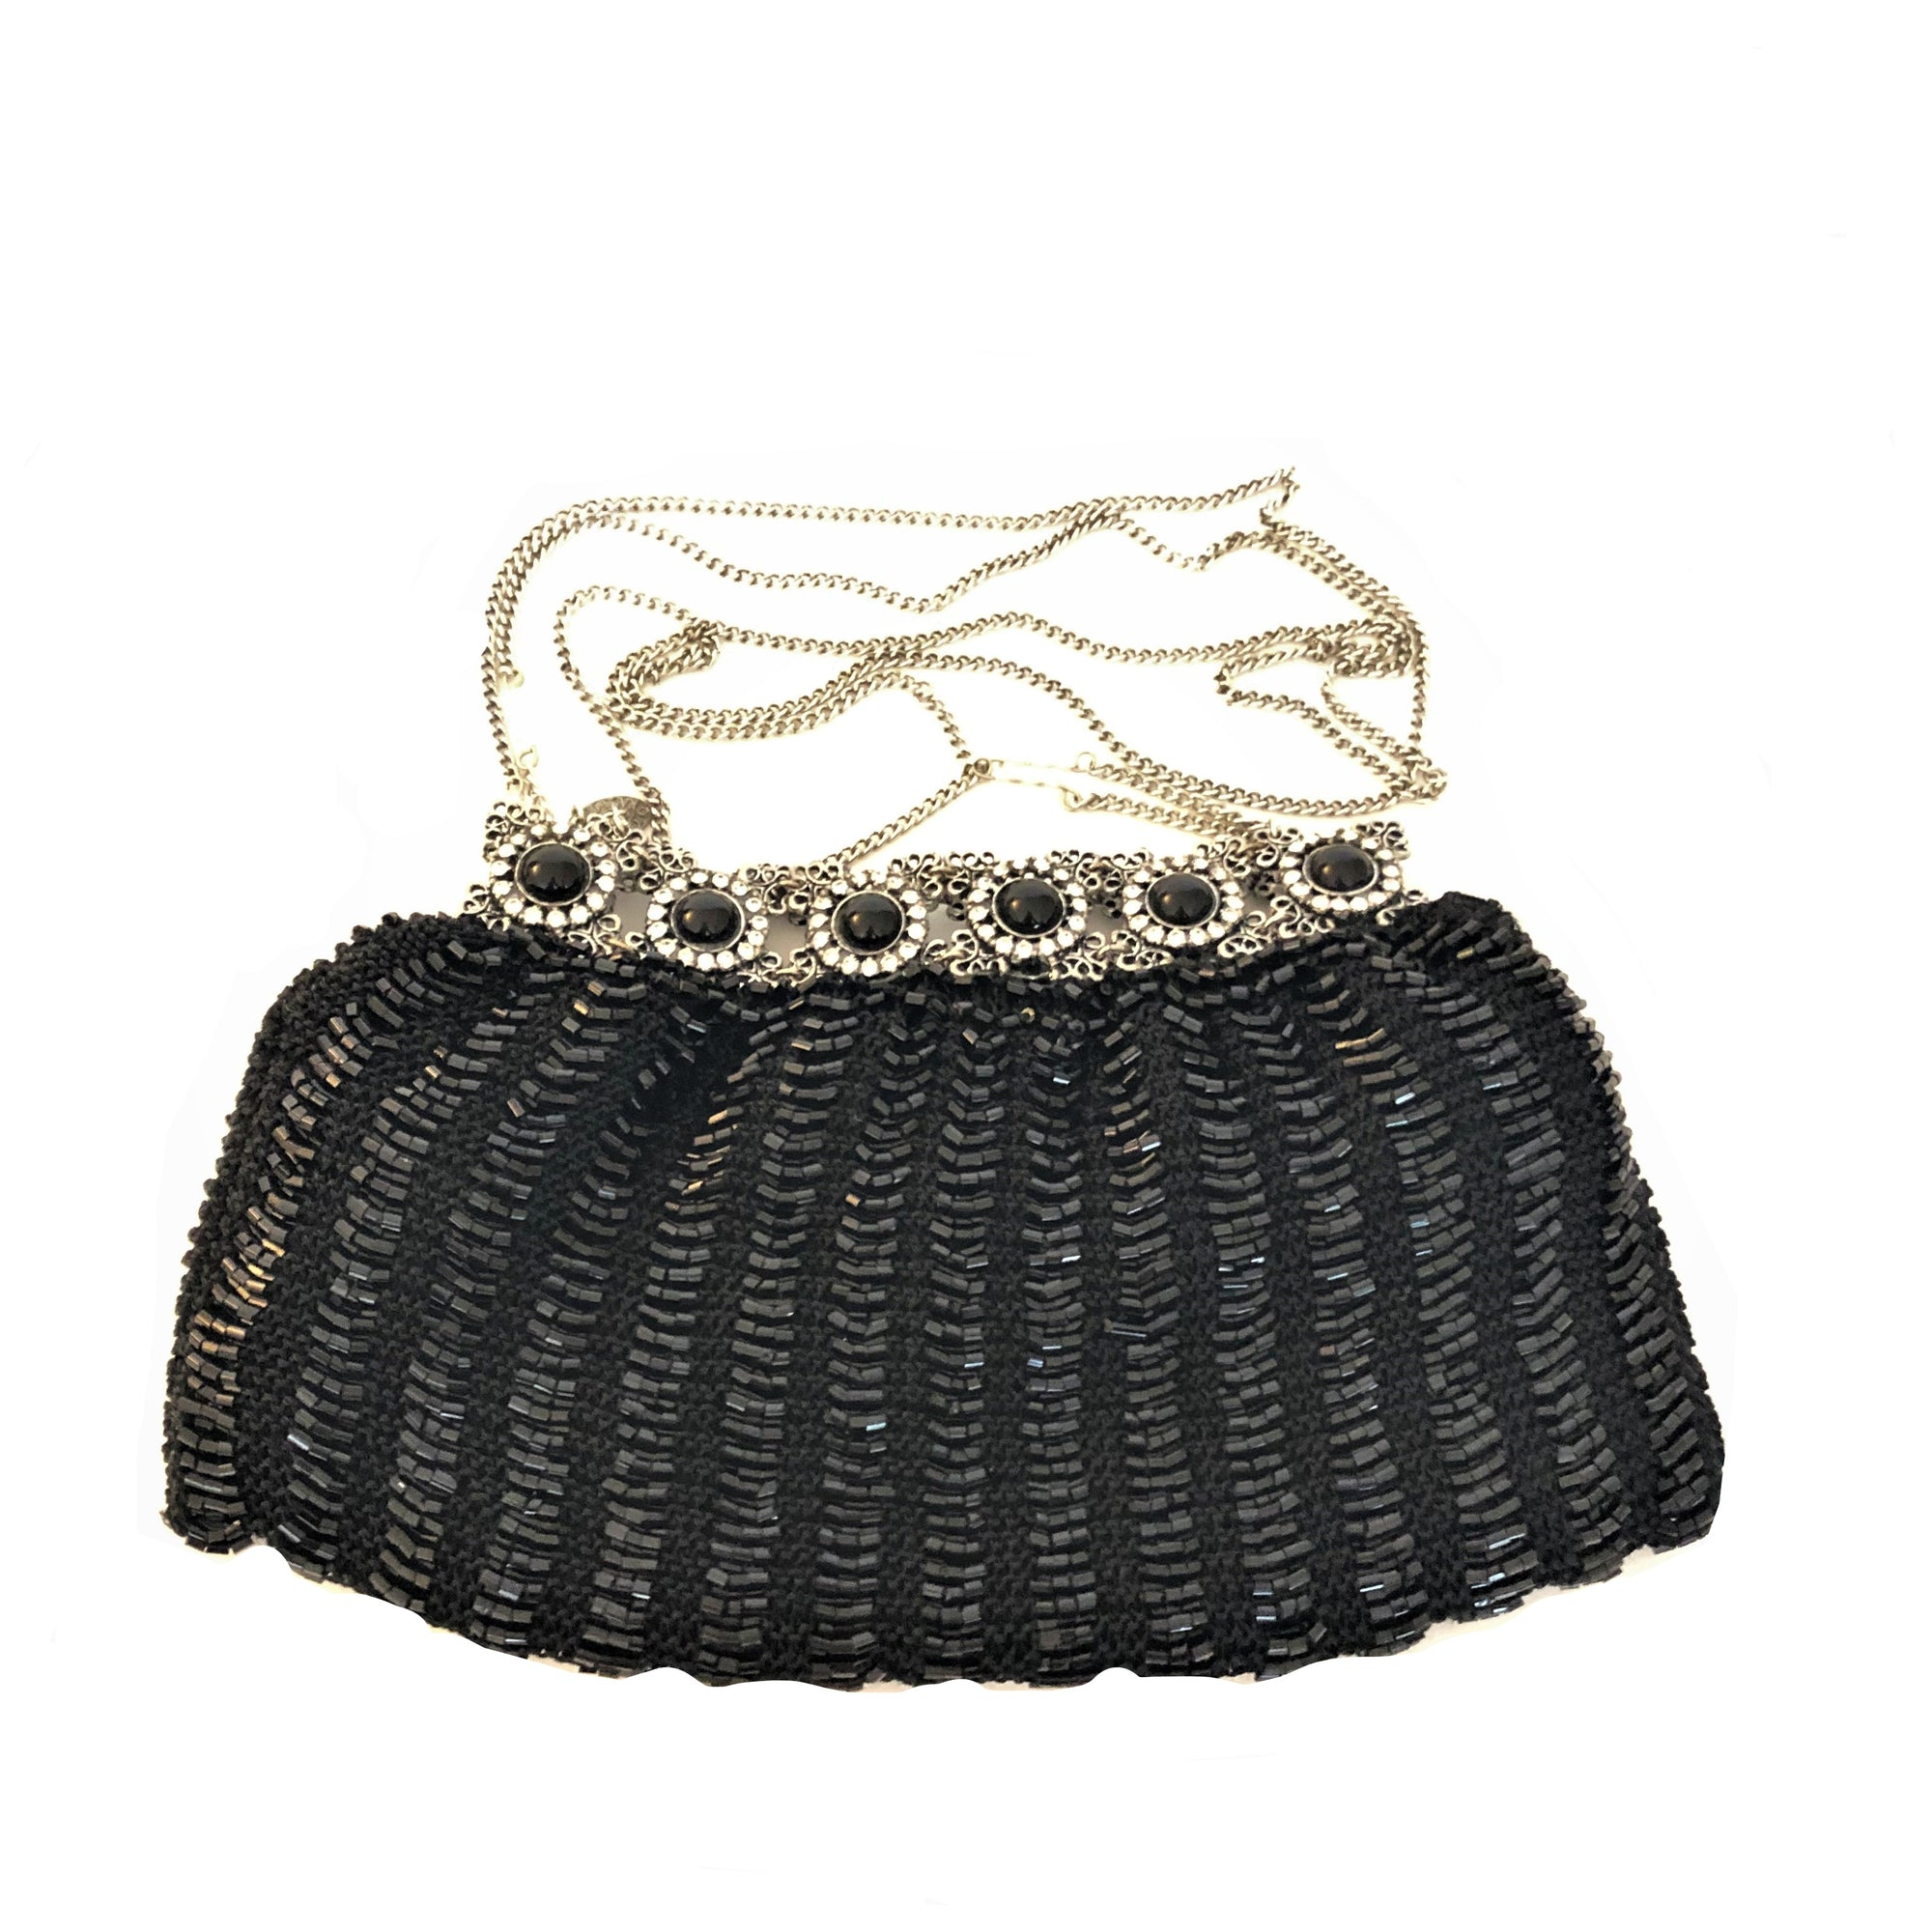 Clara Kasavina Beaded Evening Bag